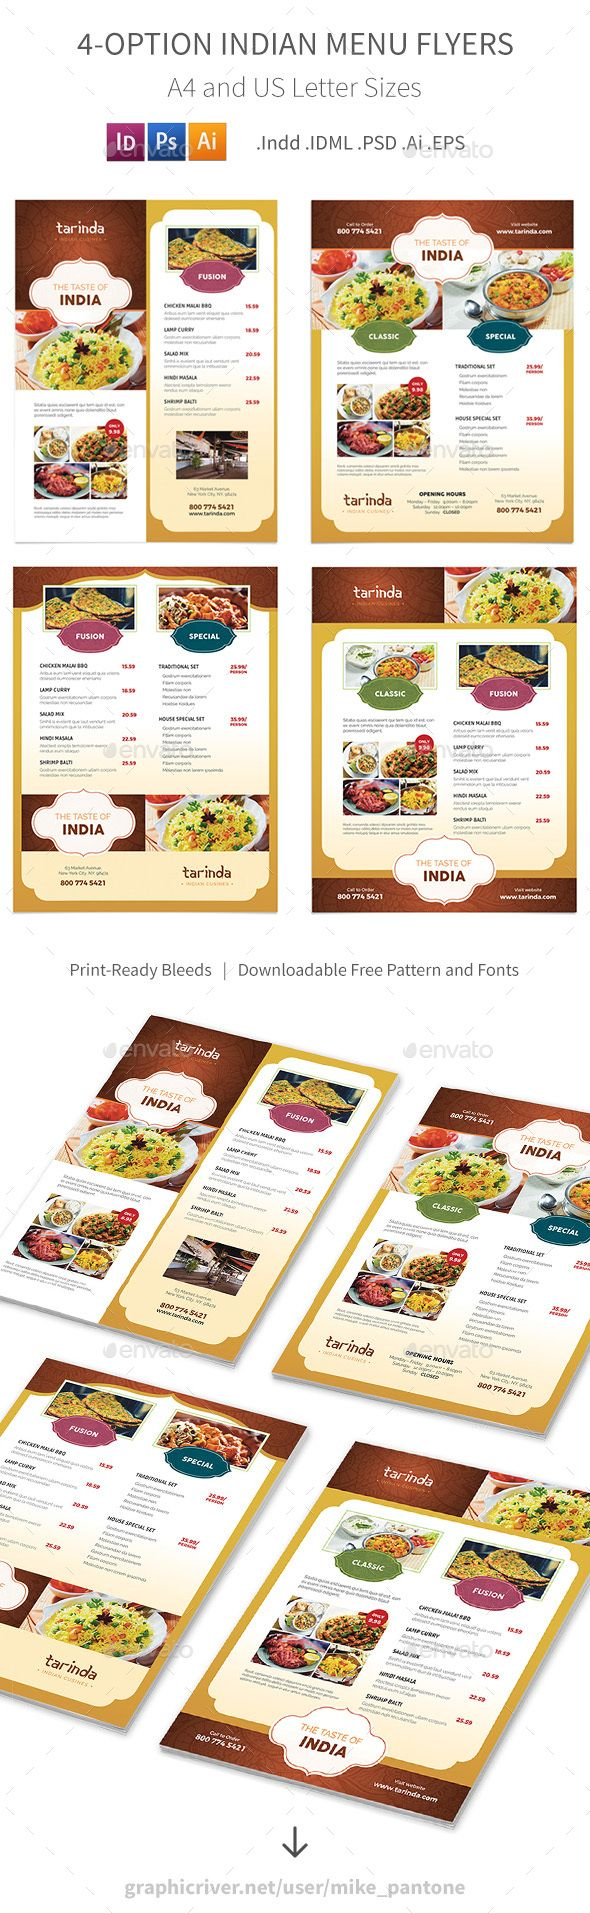 Indian Restaurant Menu Flyers – 4 Options | Food menu, Print ...